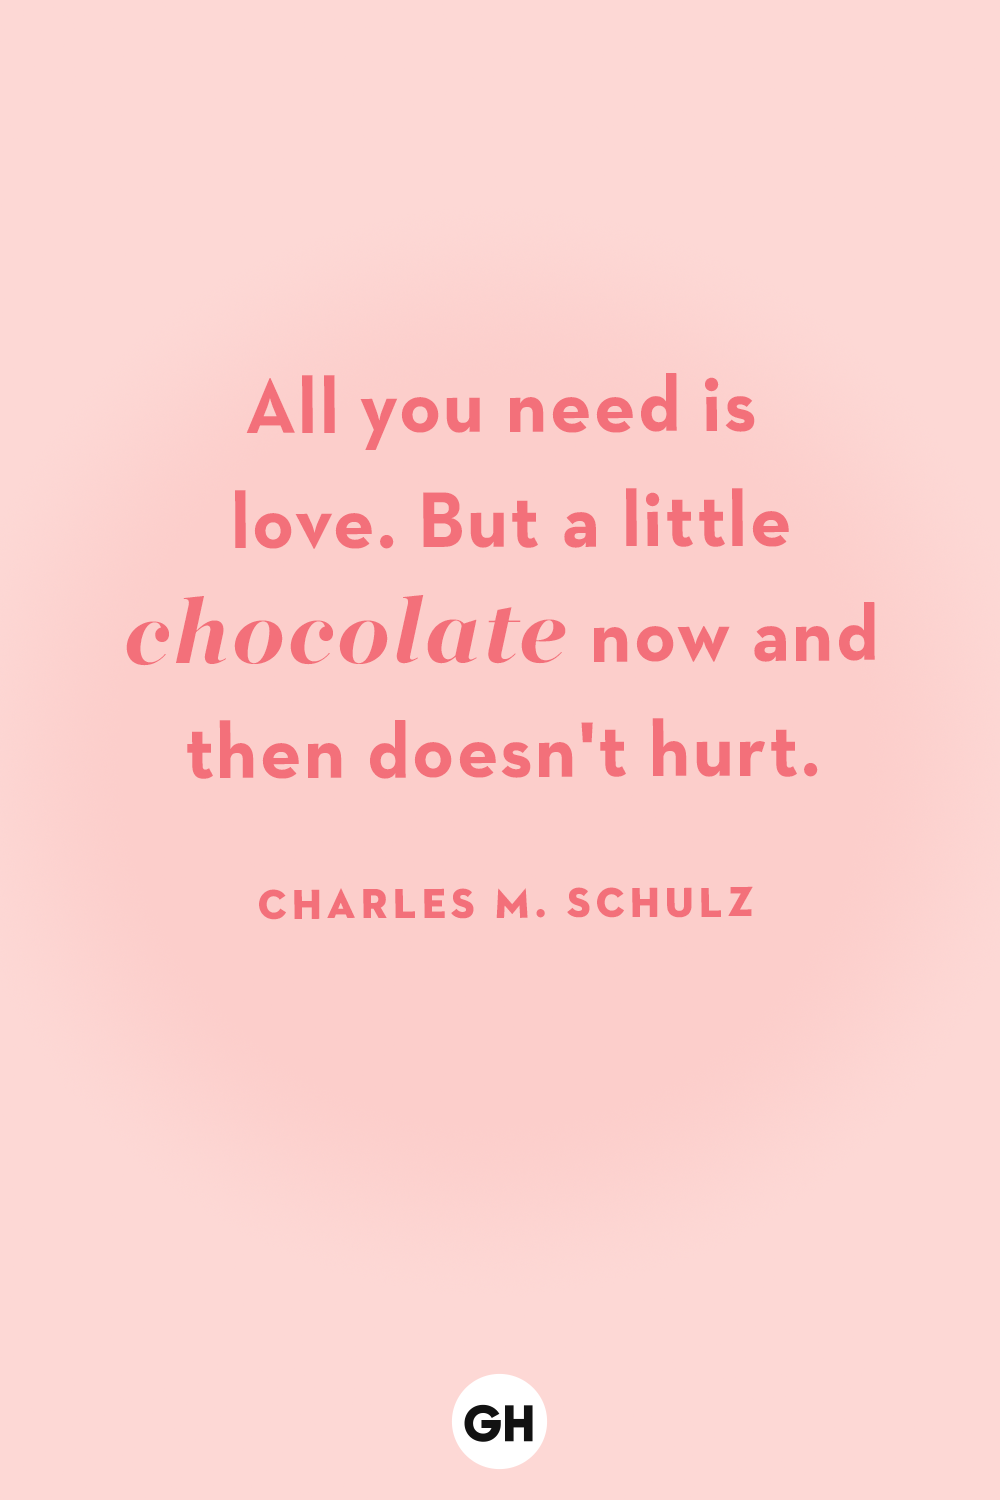 7 Best Love Quotes of All Time - Cute Famous Sayings About Love